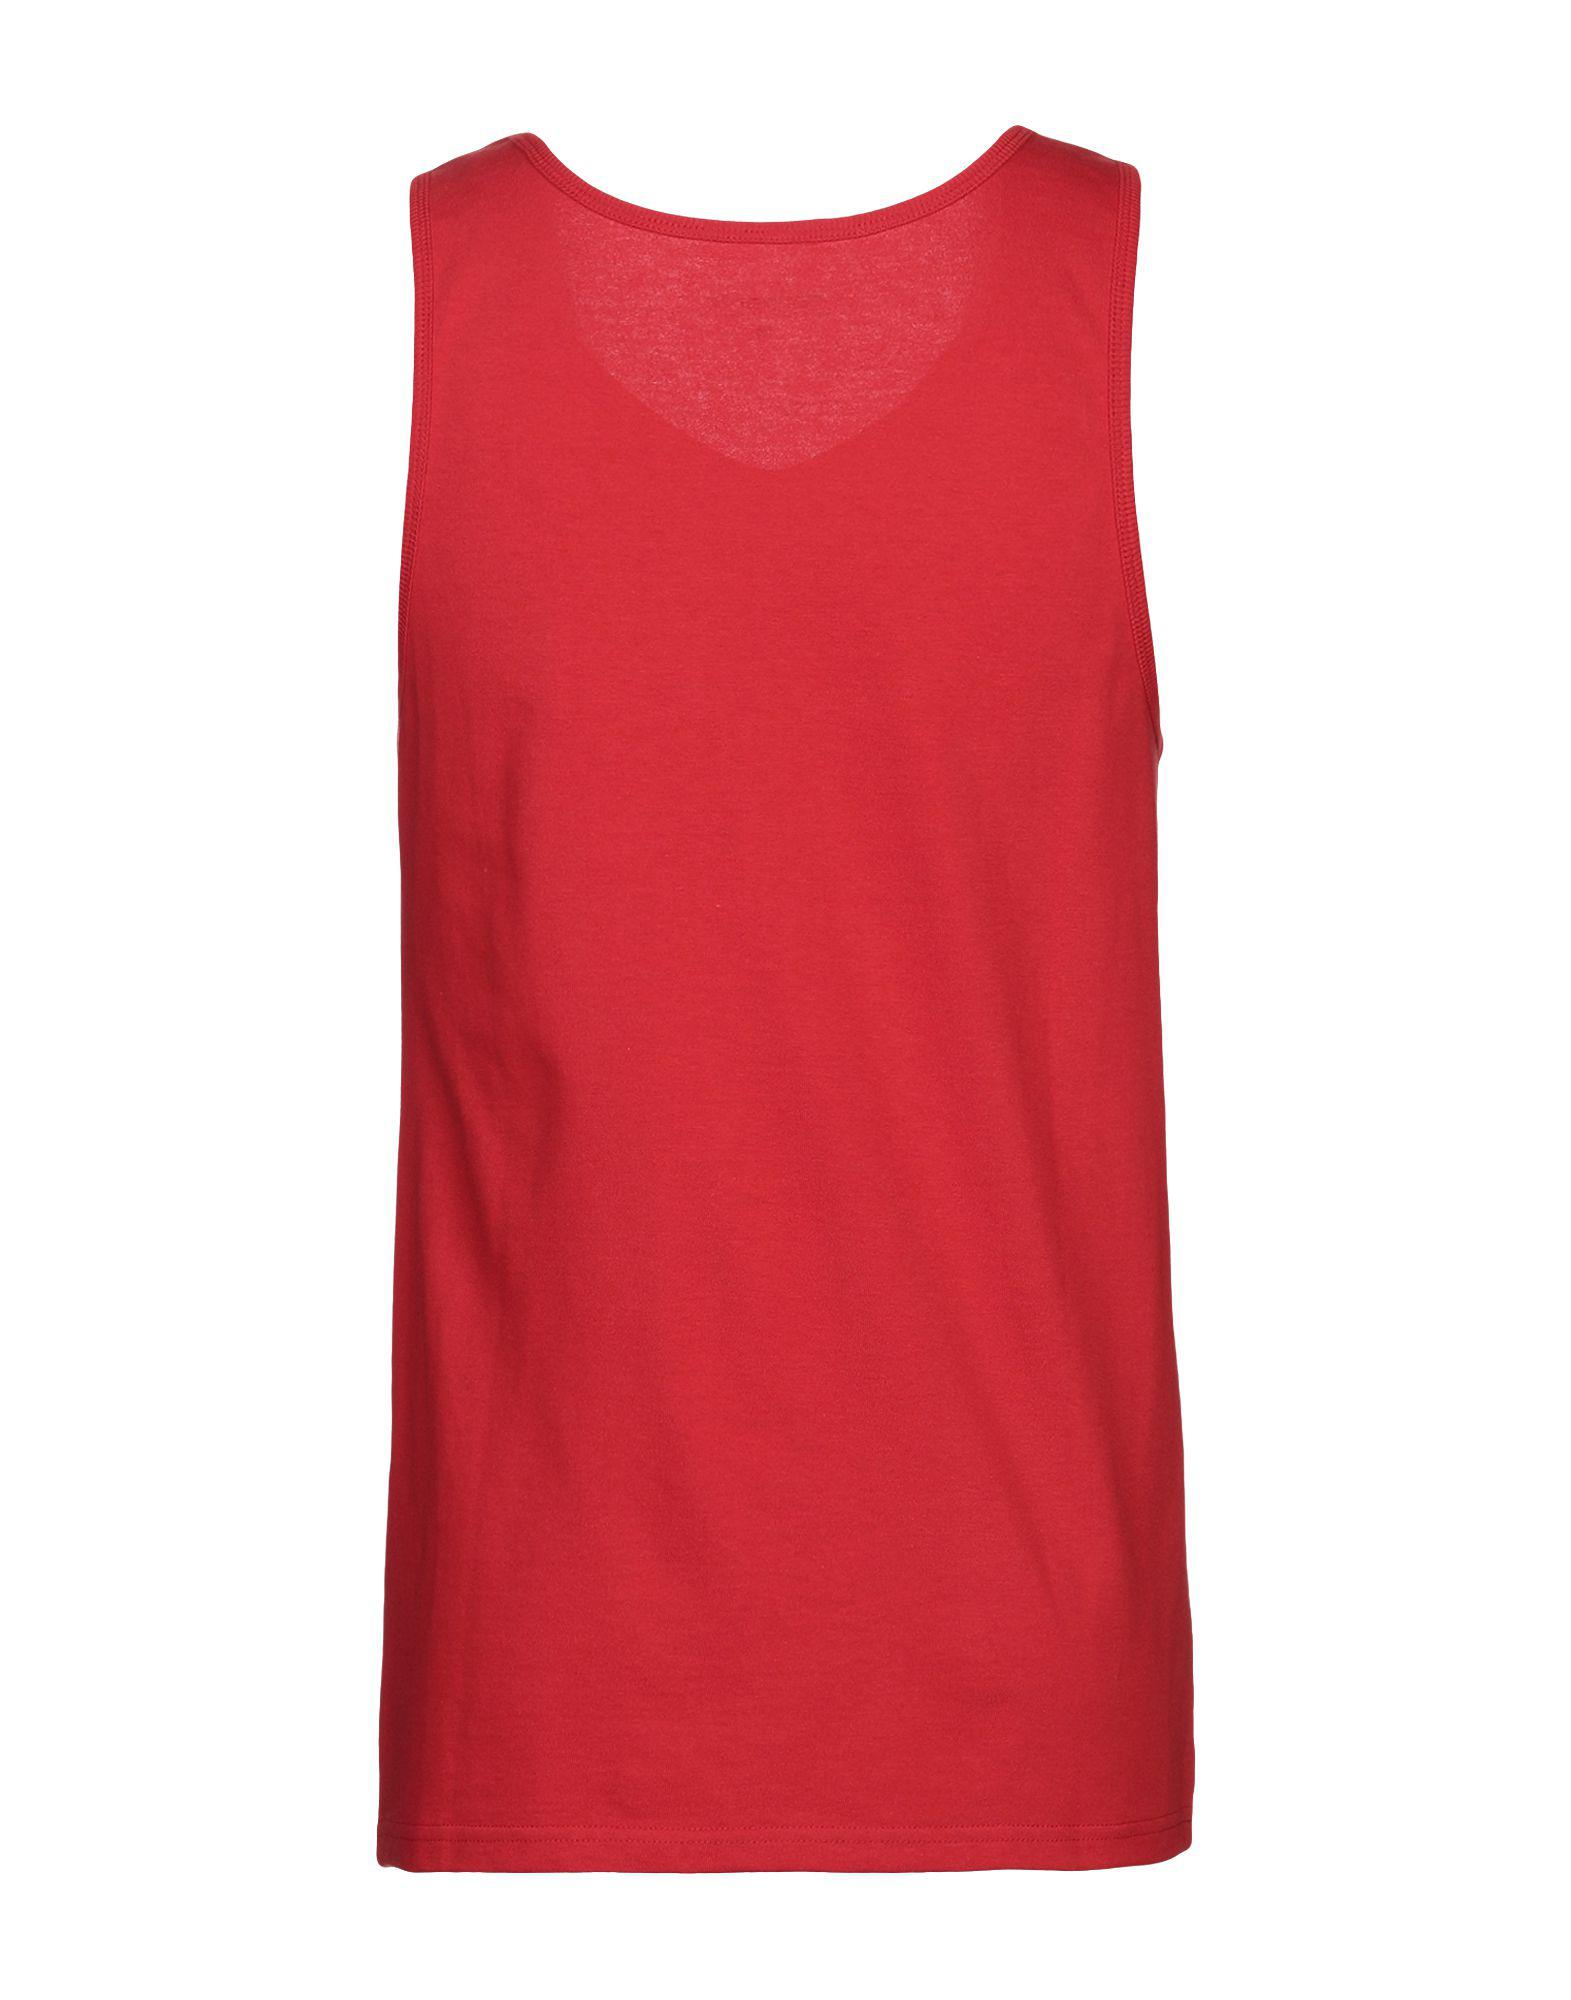 e9f967da555bf7 Lyst - Carhartt Tank Top in Red for Men